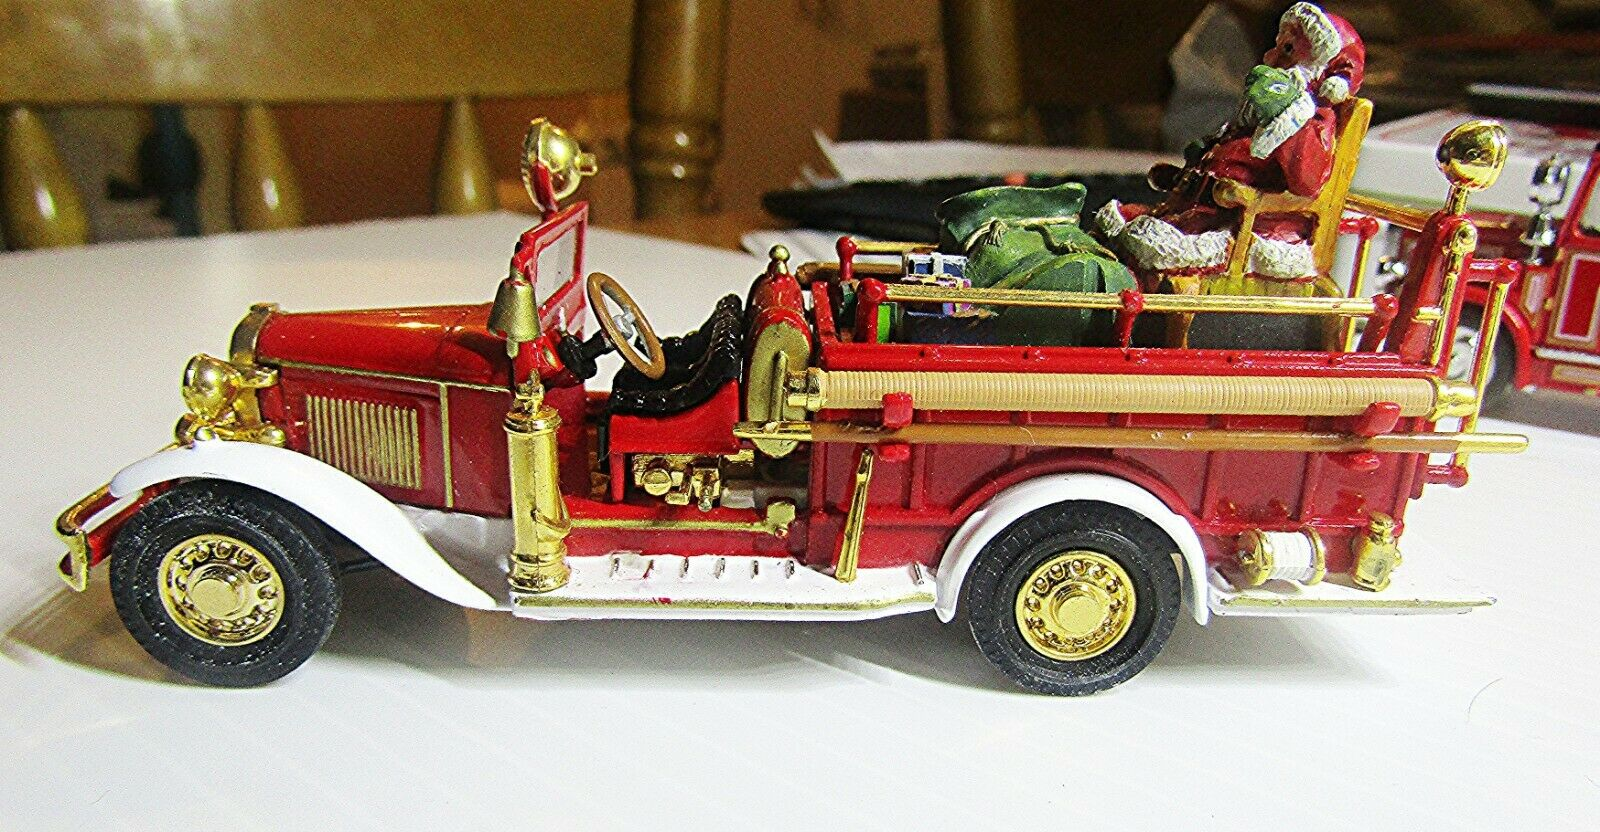 MATCHBOX YFE09 YESTERYEAR 1932 FORD AA OPEN CAB FIRE ENGINE- SANTA CLAUS SLEIGH